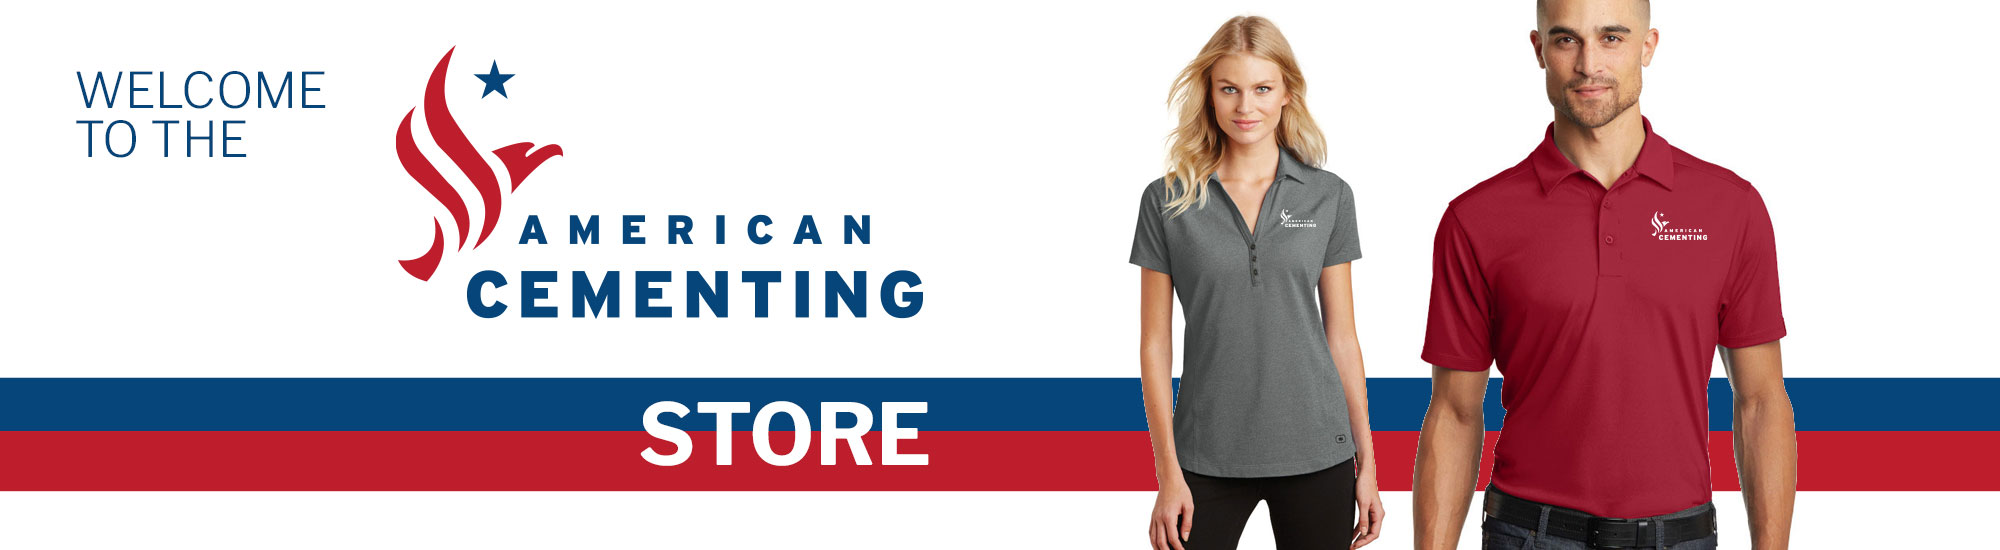 Welcome to the American Cementing Store